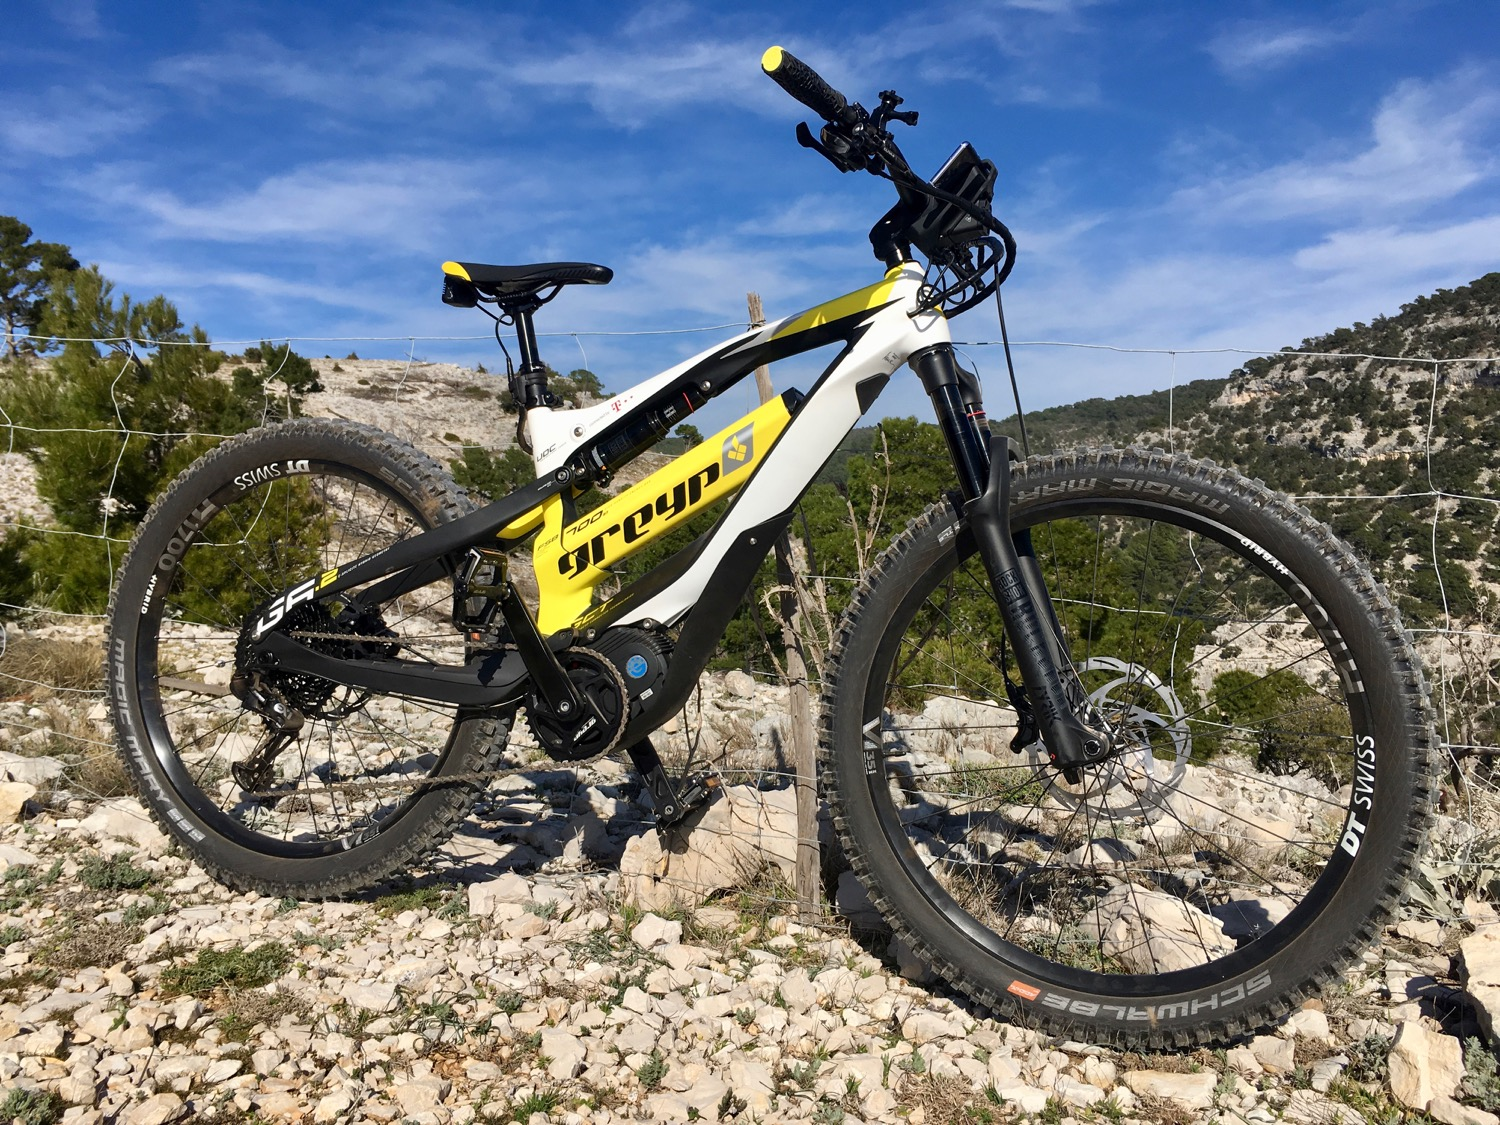 Greyp G6 first ride – an incredible e-bike with tons (and perhaps too much) tech